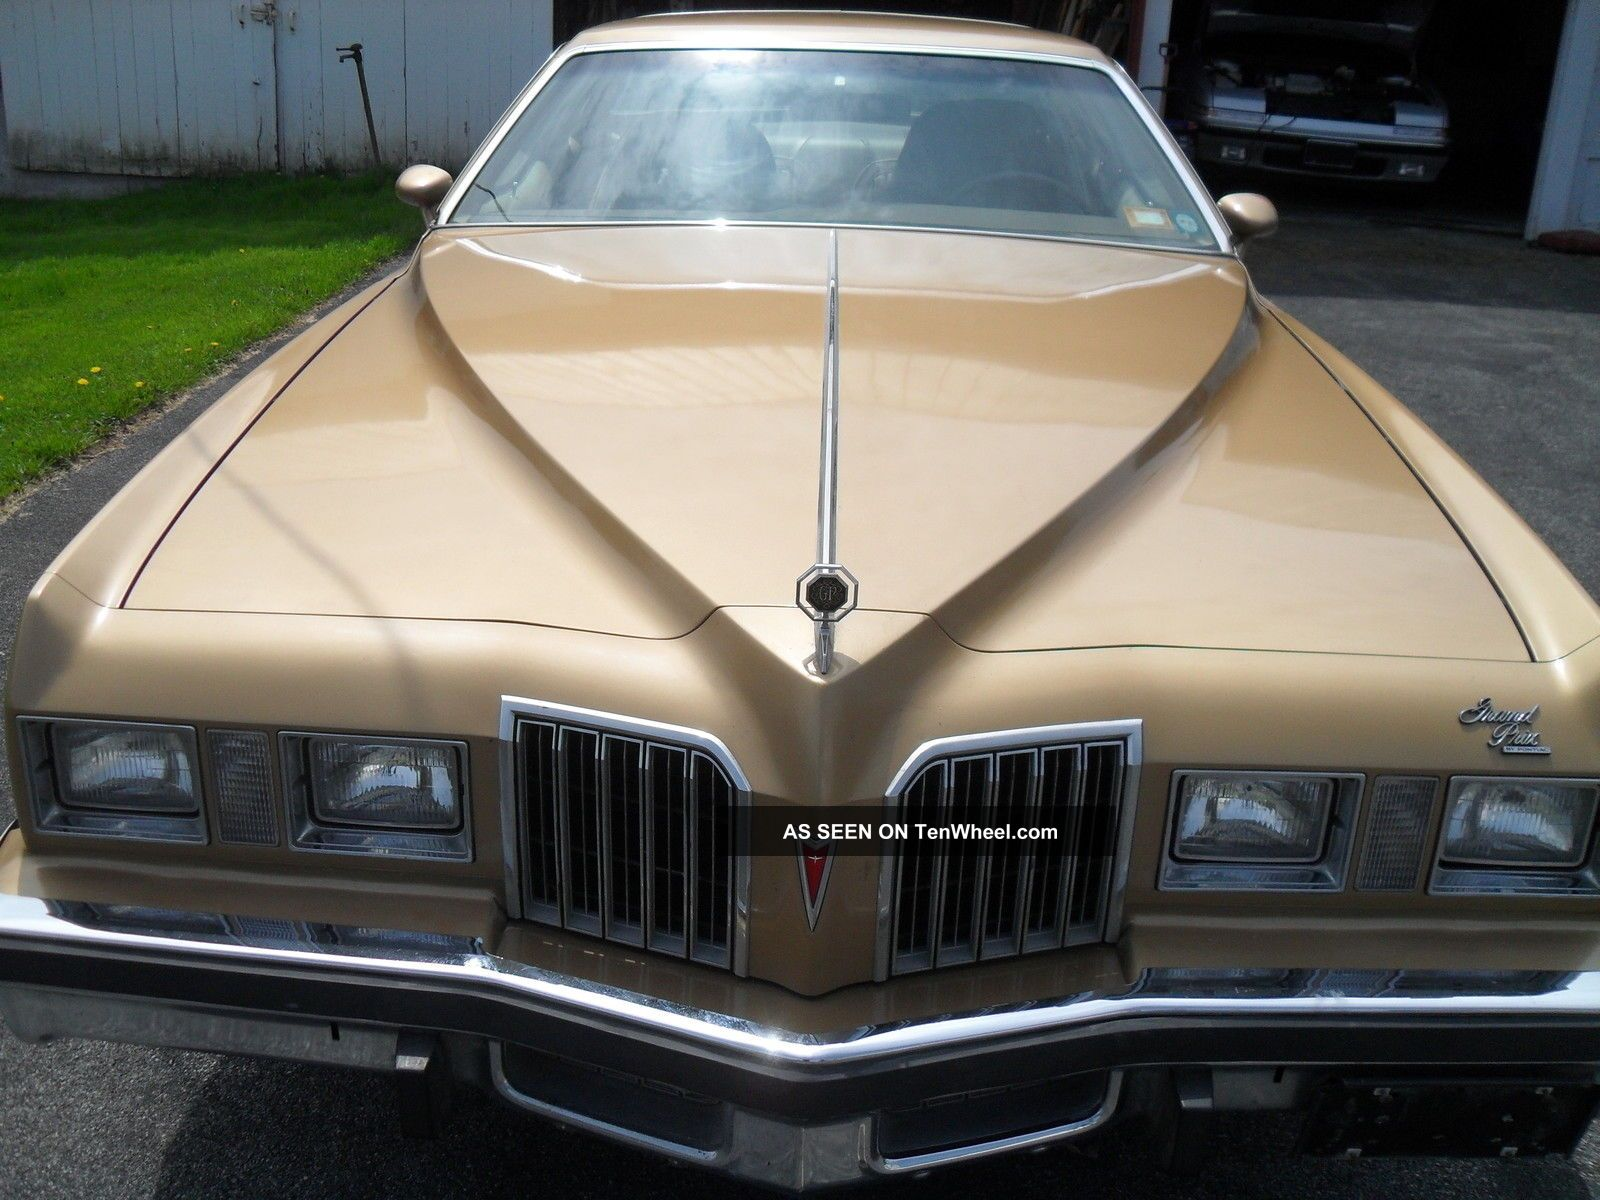 1977 Pontiac Grand Prix Lj Series Grand Prix photo